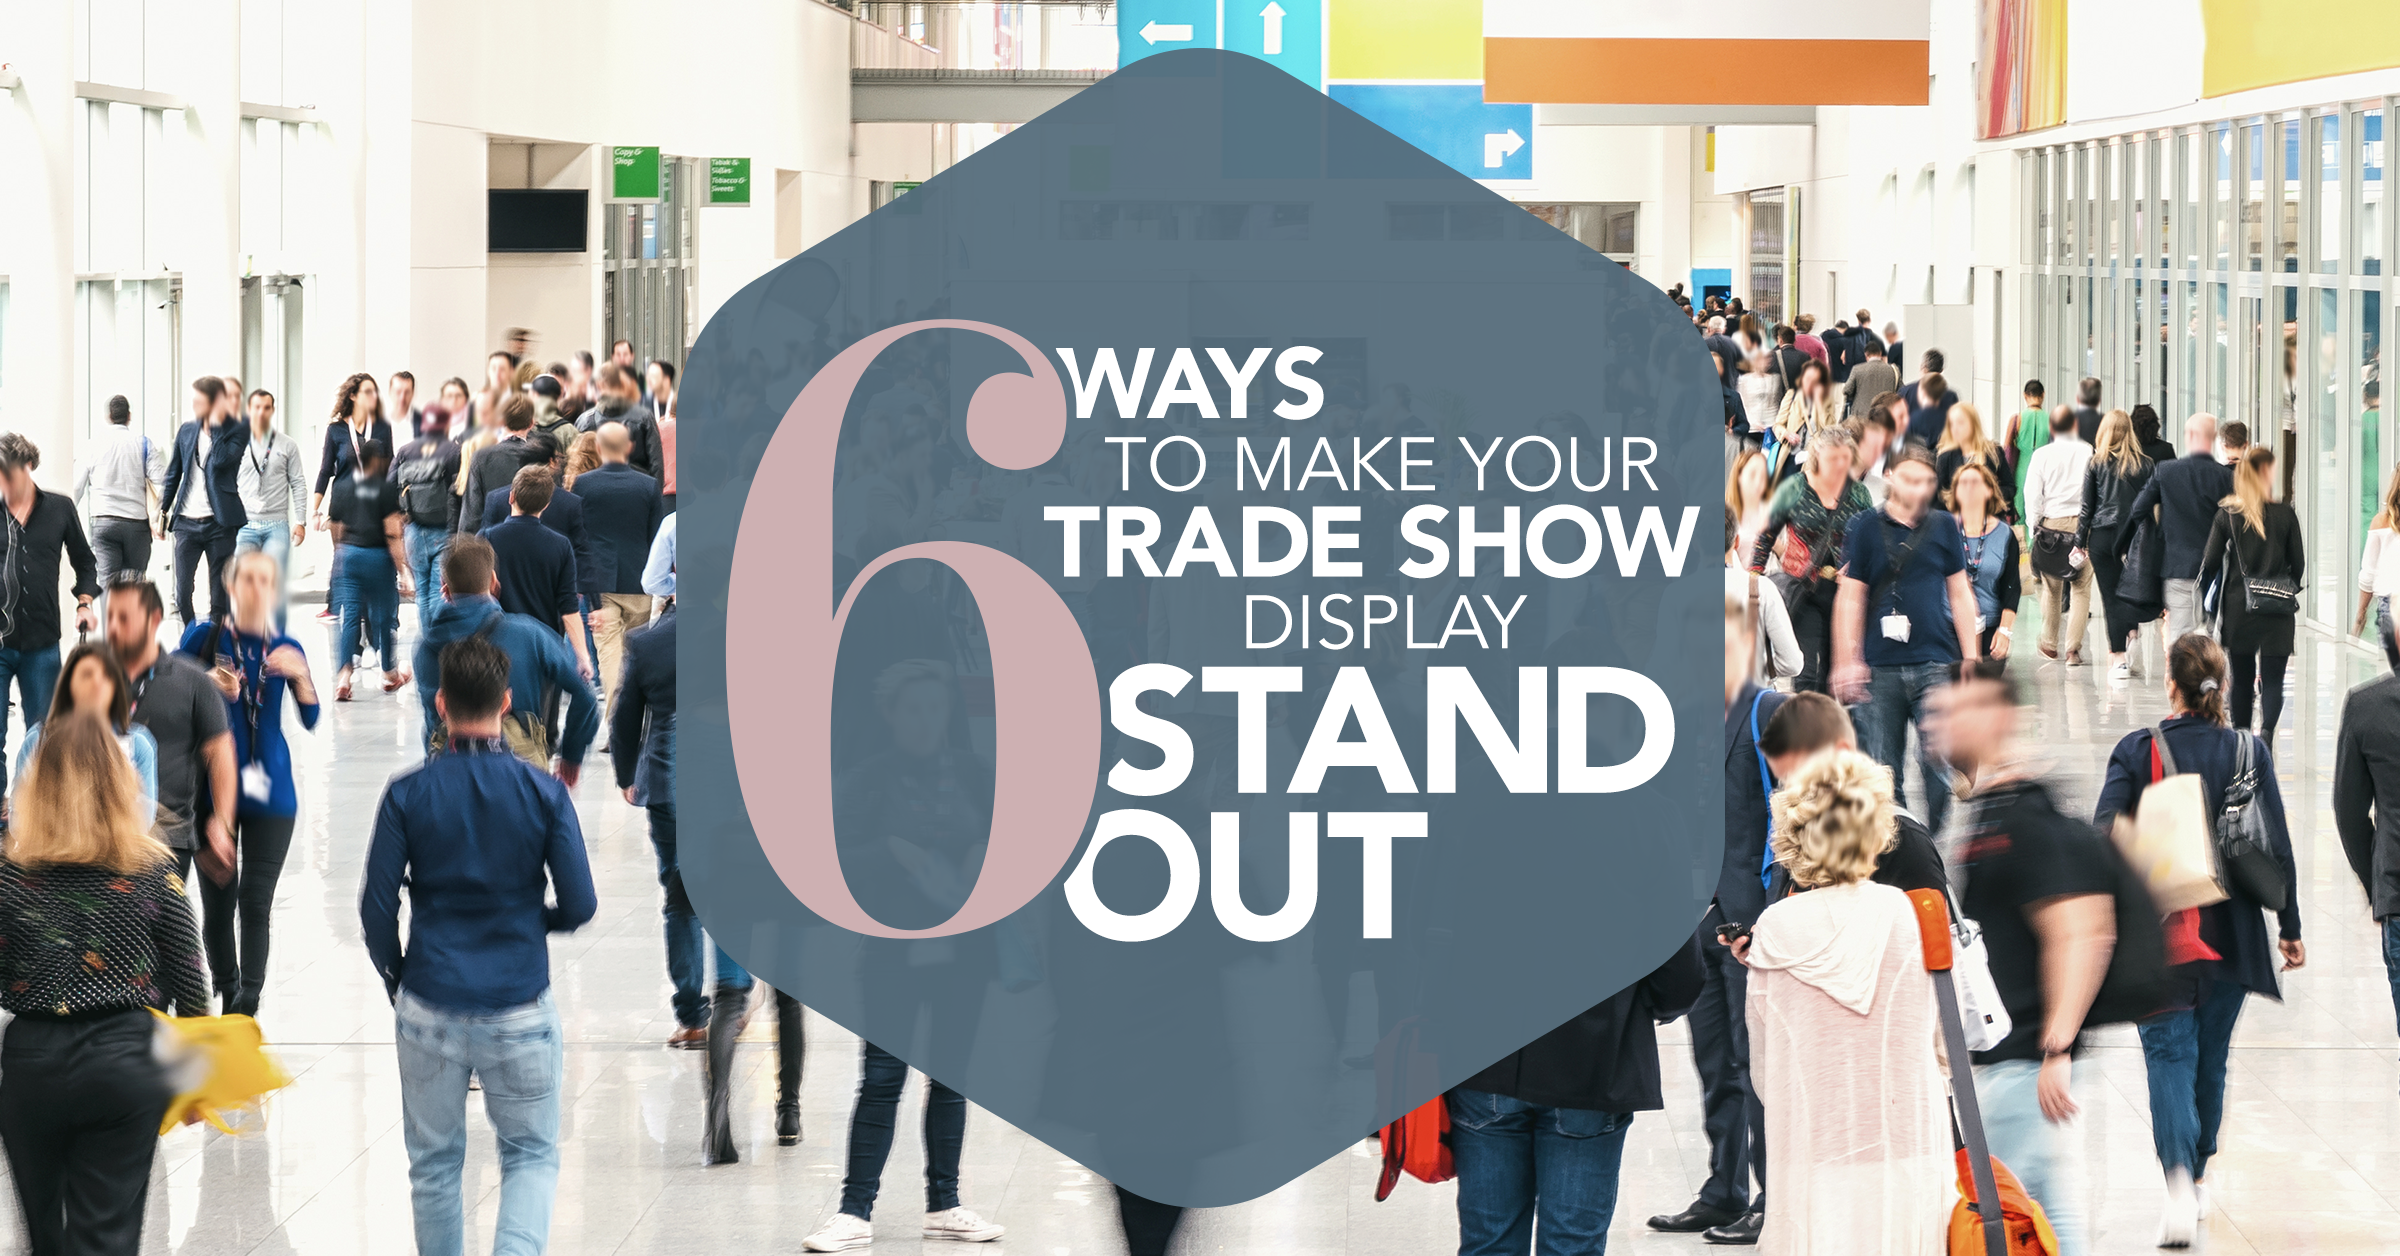 6 Ways to Make Your Trade Show Display Stand Out From the Rest